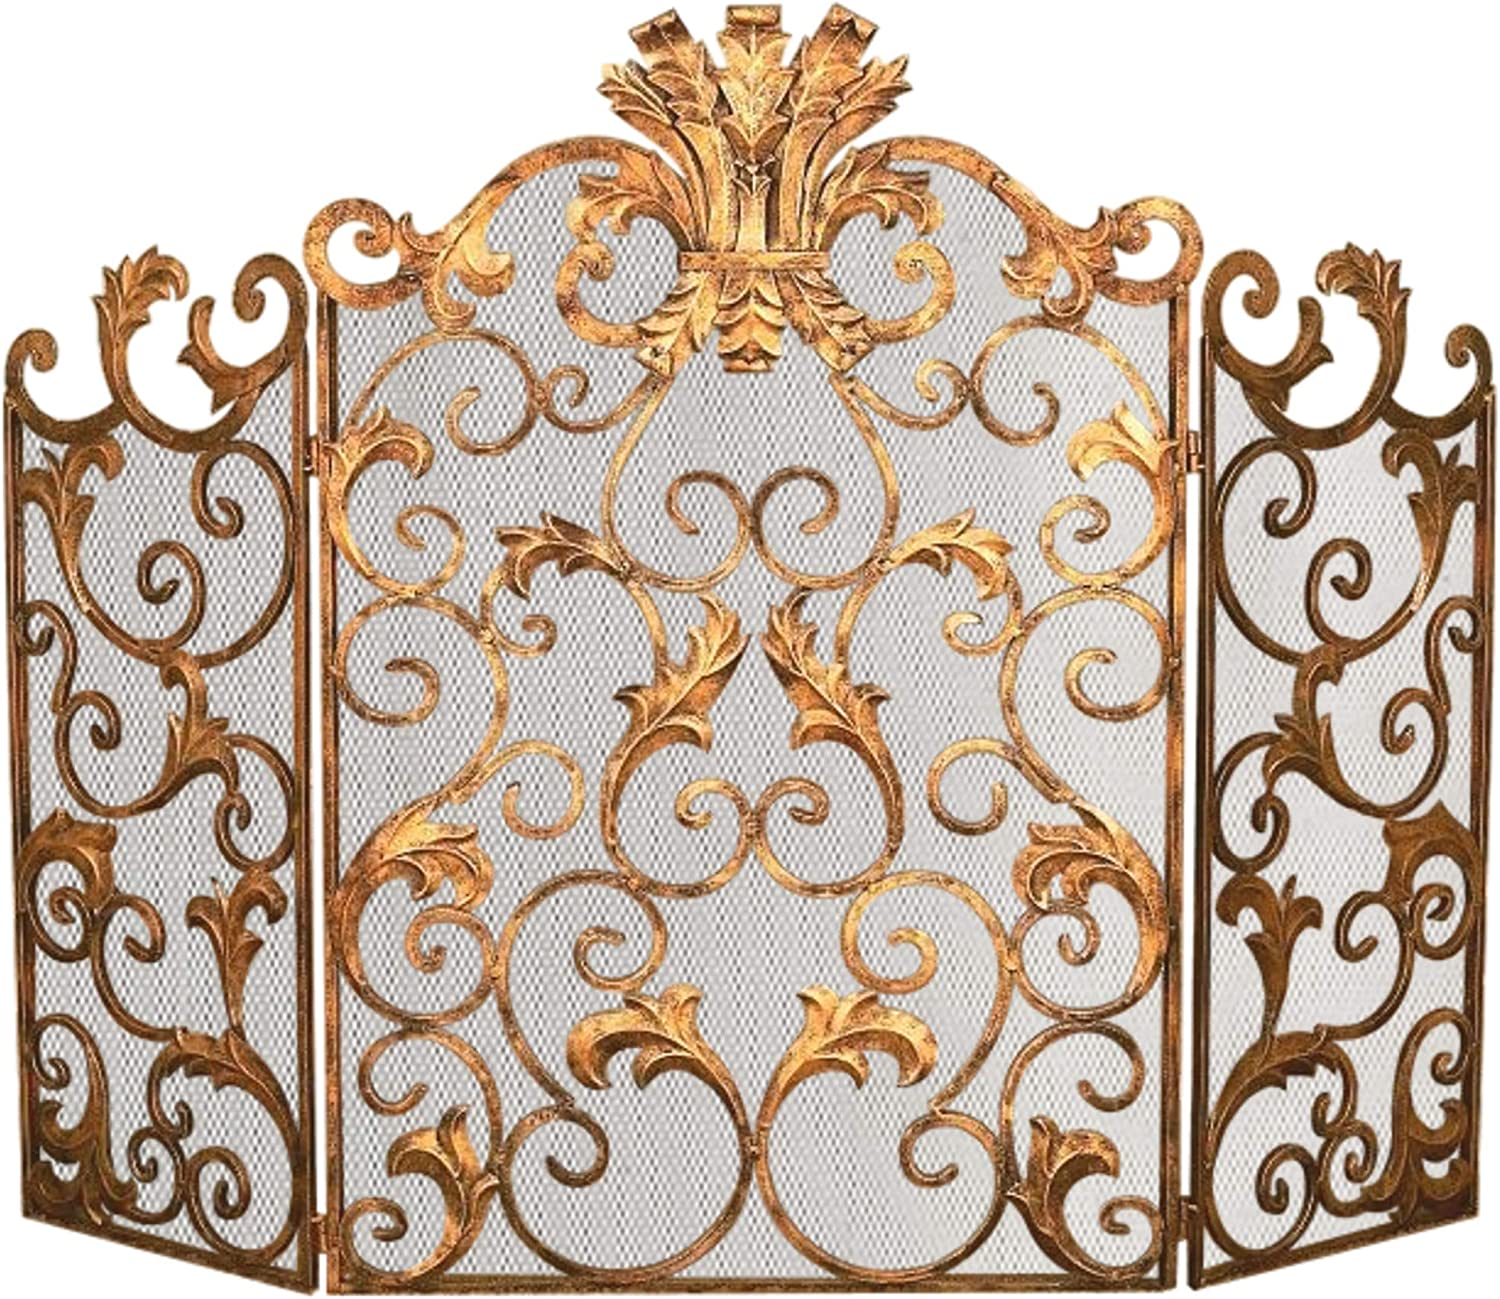 MY SWANKY HOME Ornate Gold Acanthus Leaf Scroll Firescreen Iron Fireplace Screen Mesh